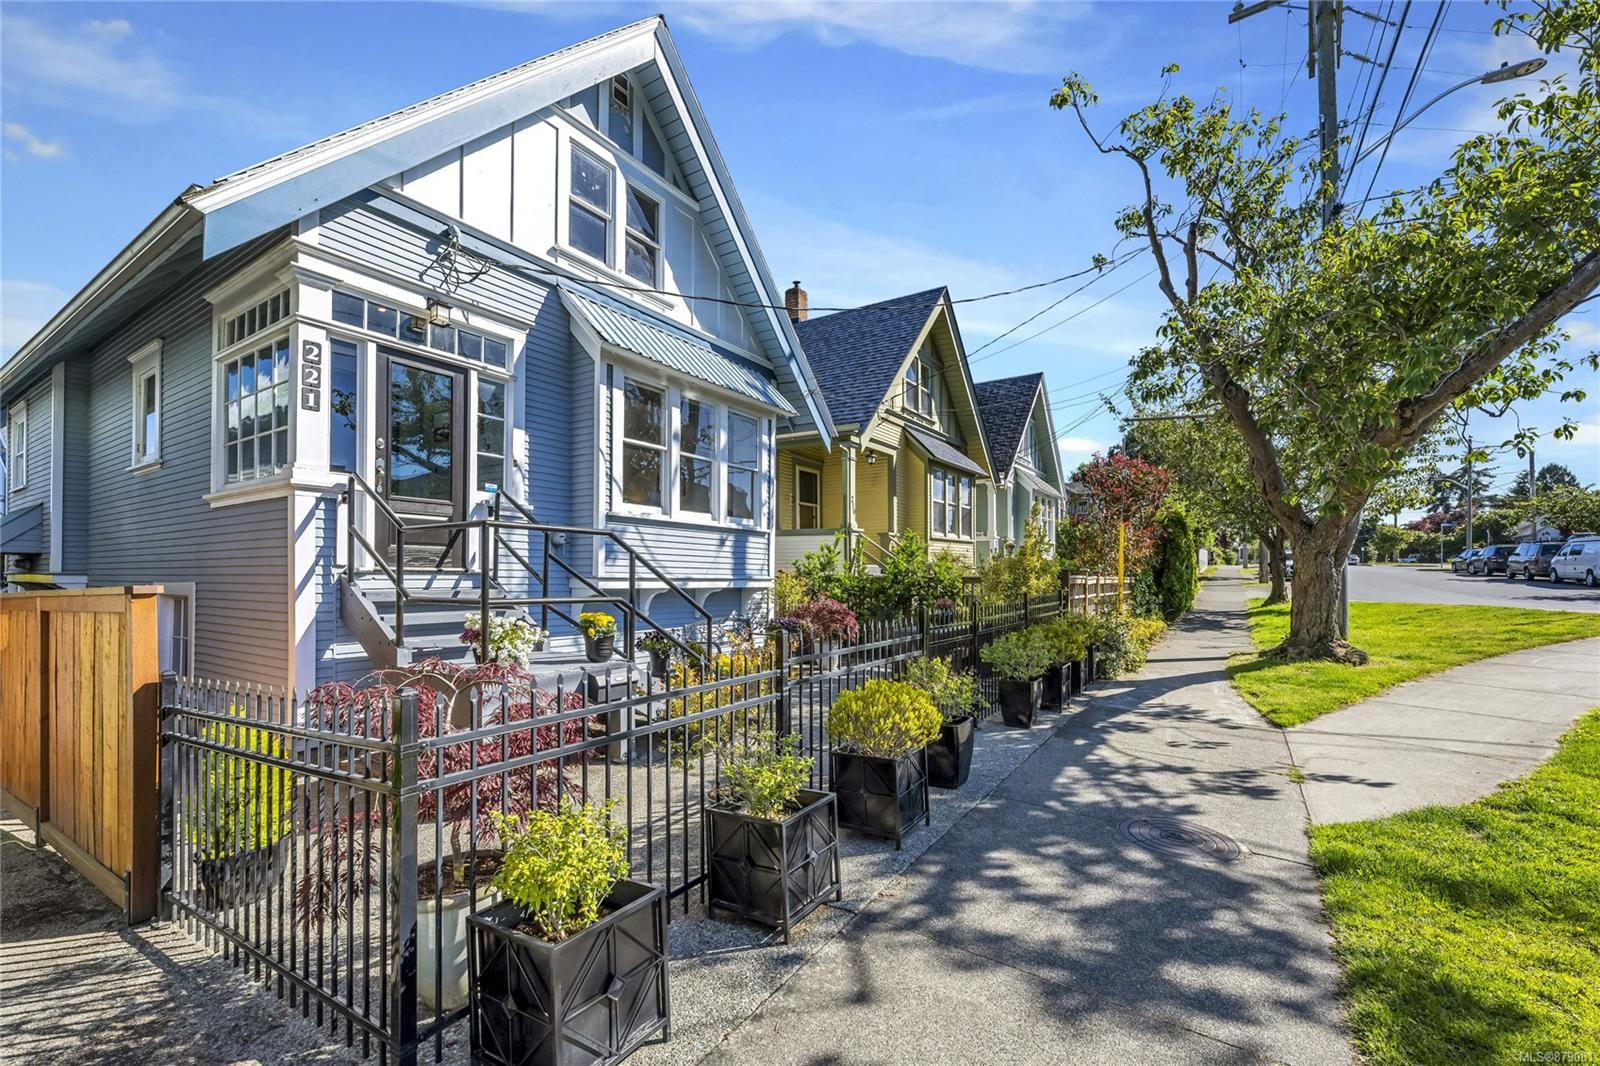 Main Photo: 221 St. Lawrence St in : Vi James Bay House for sale (Victoria)  : MLS®# 879081